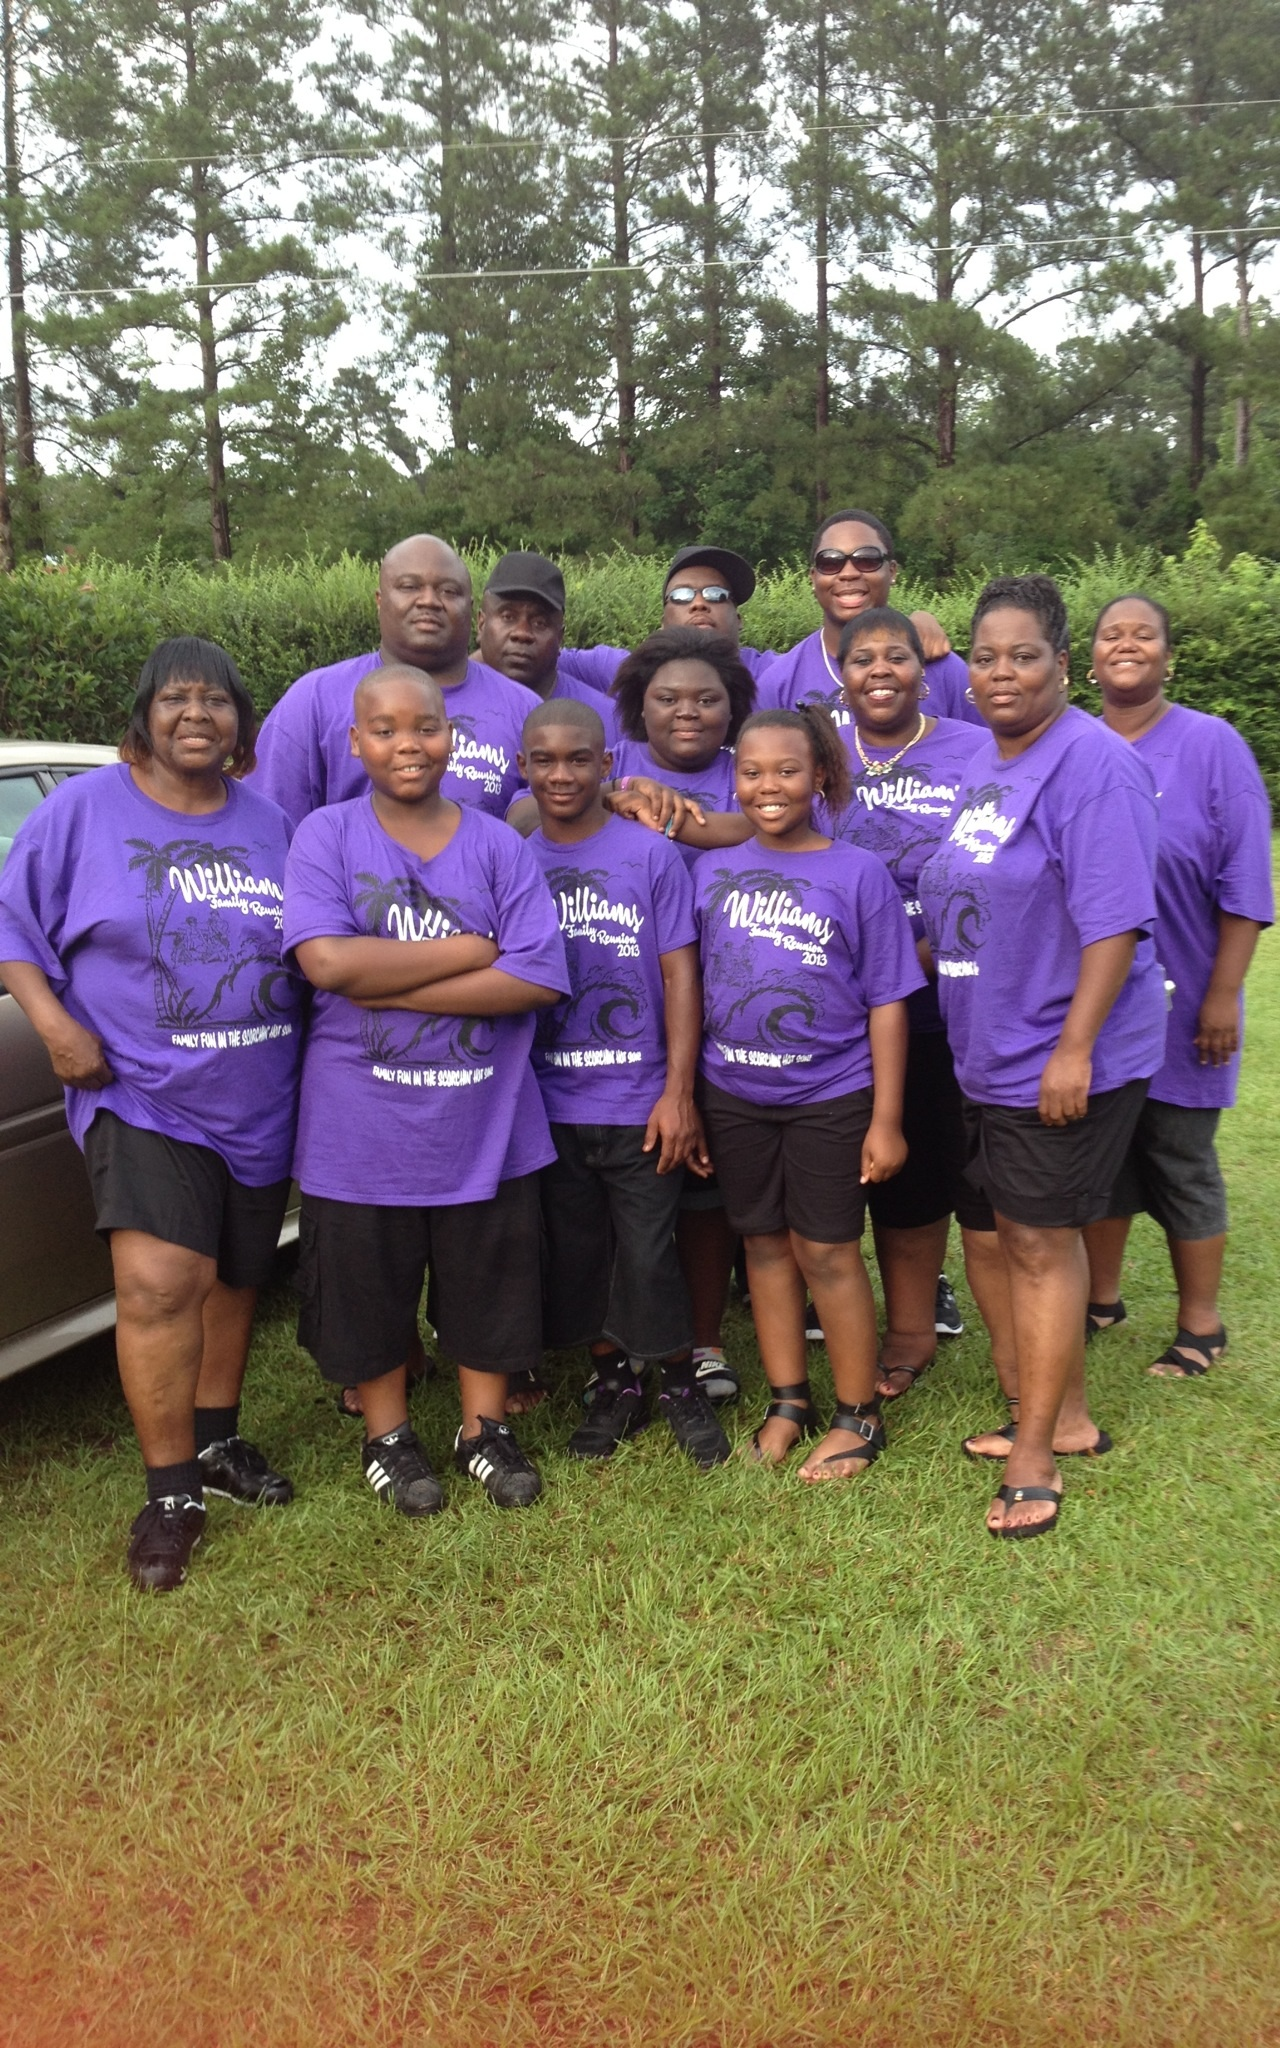 Design your own t-shirt for family reunion - Williams Family Reunion 13 T Shirt Photo